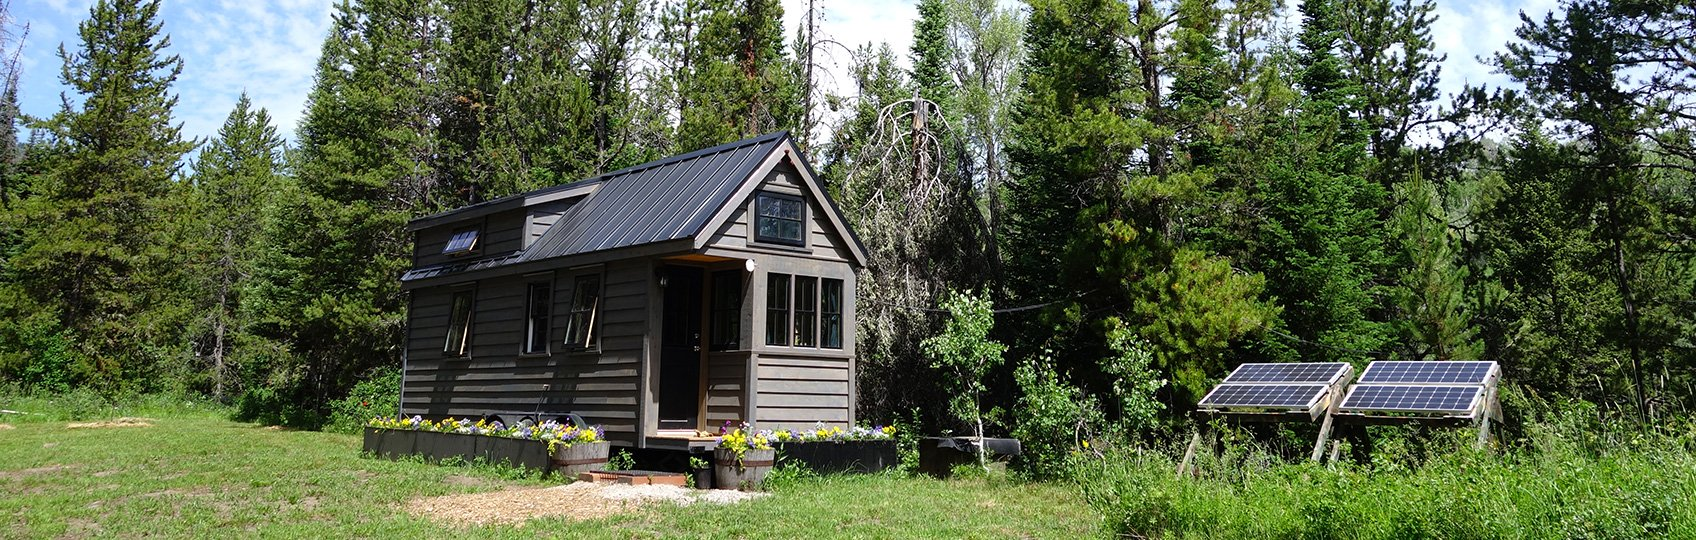 Vermont Tiny Homes for Sale